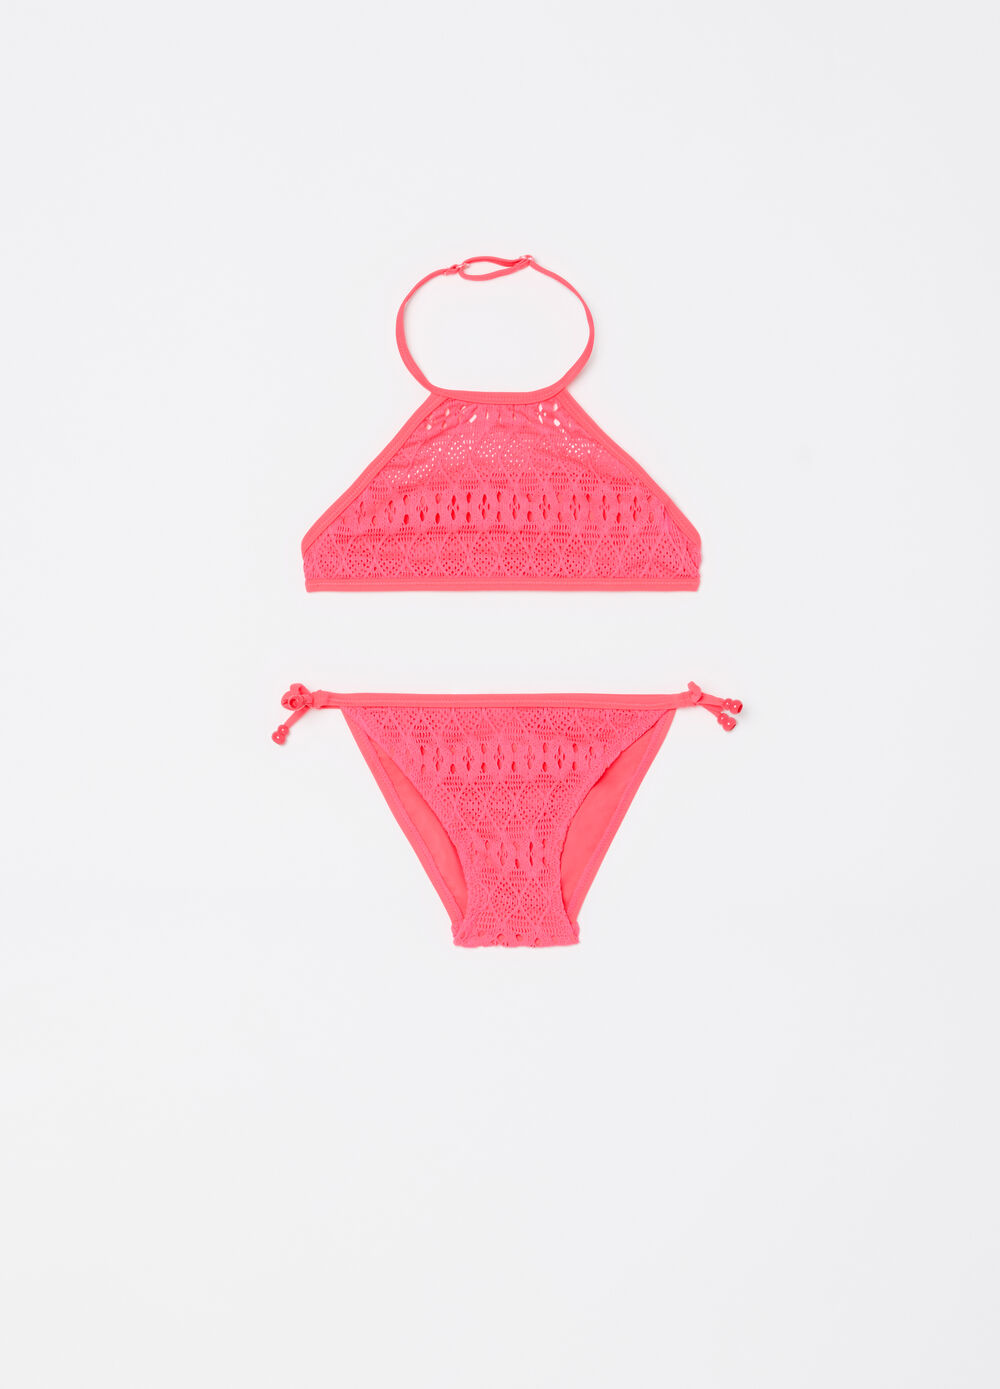 Stretch bikini with top and briefs with openwork weave